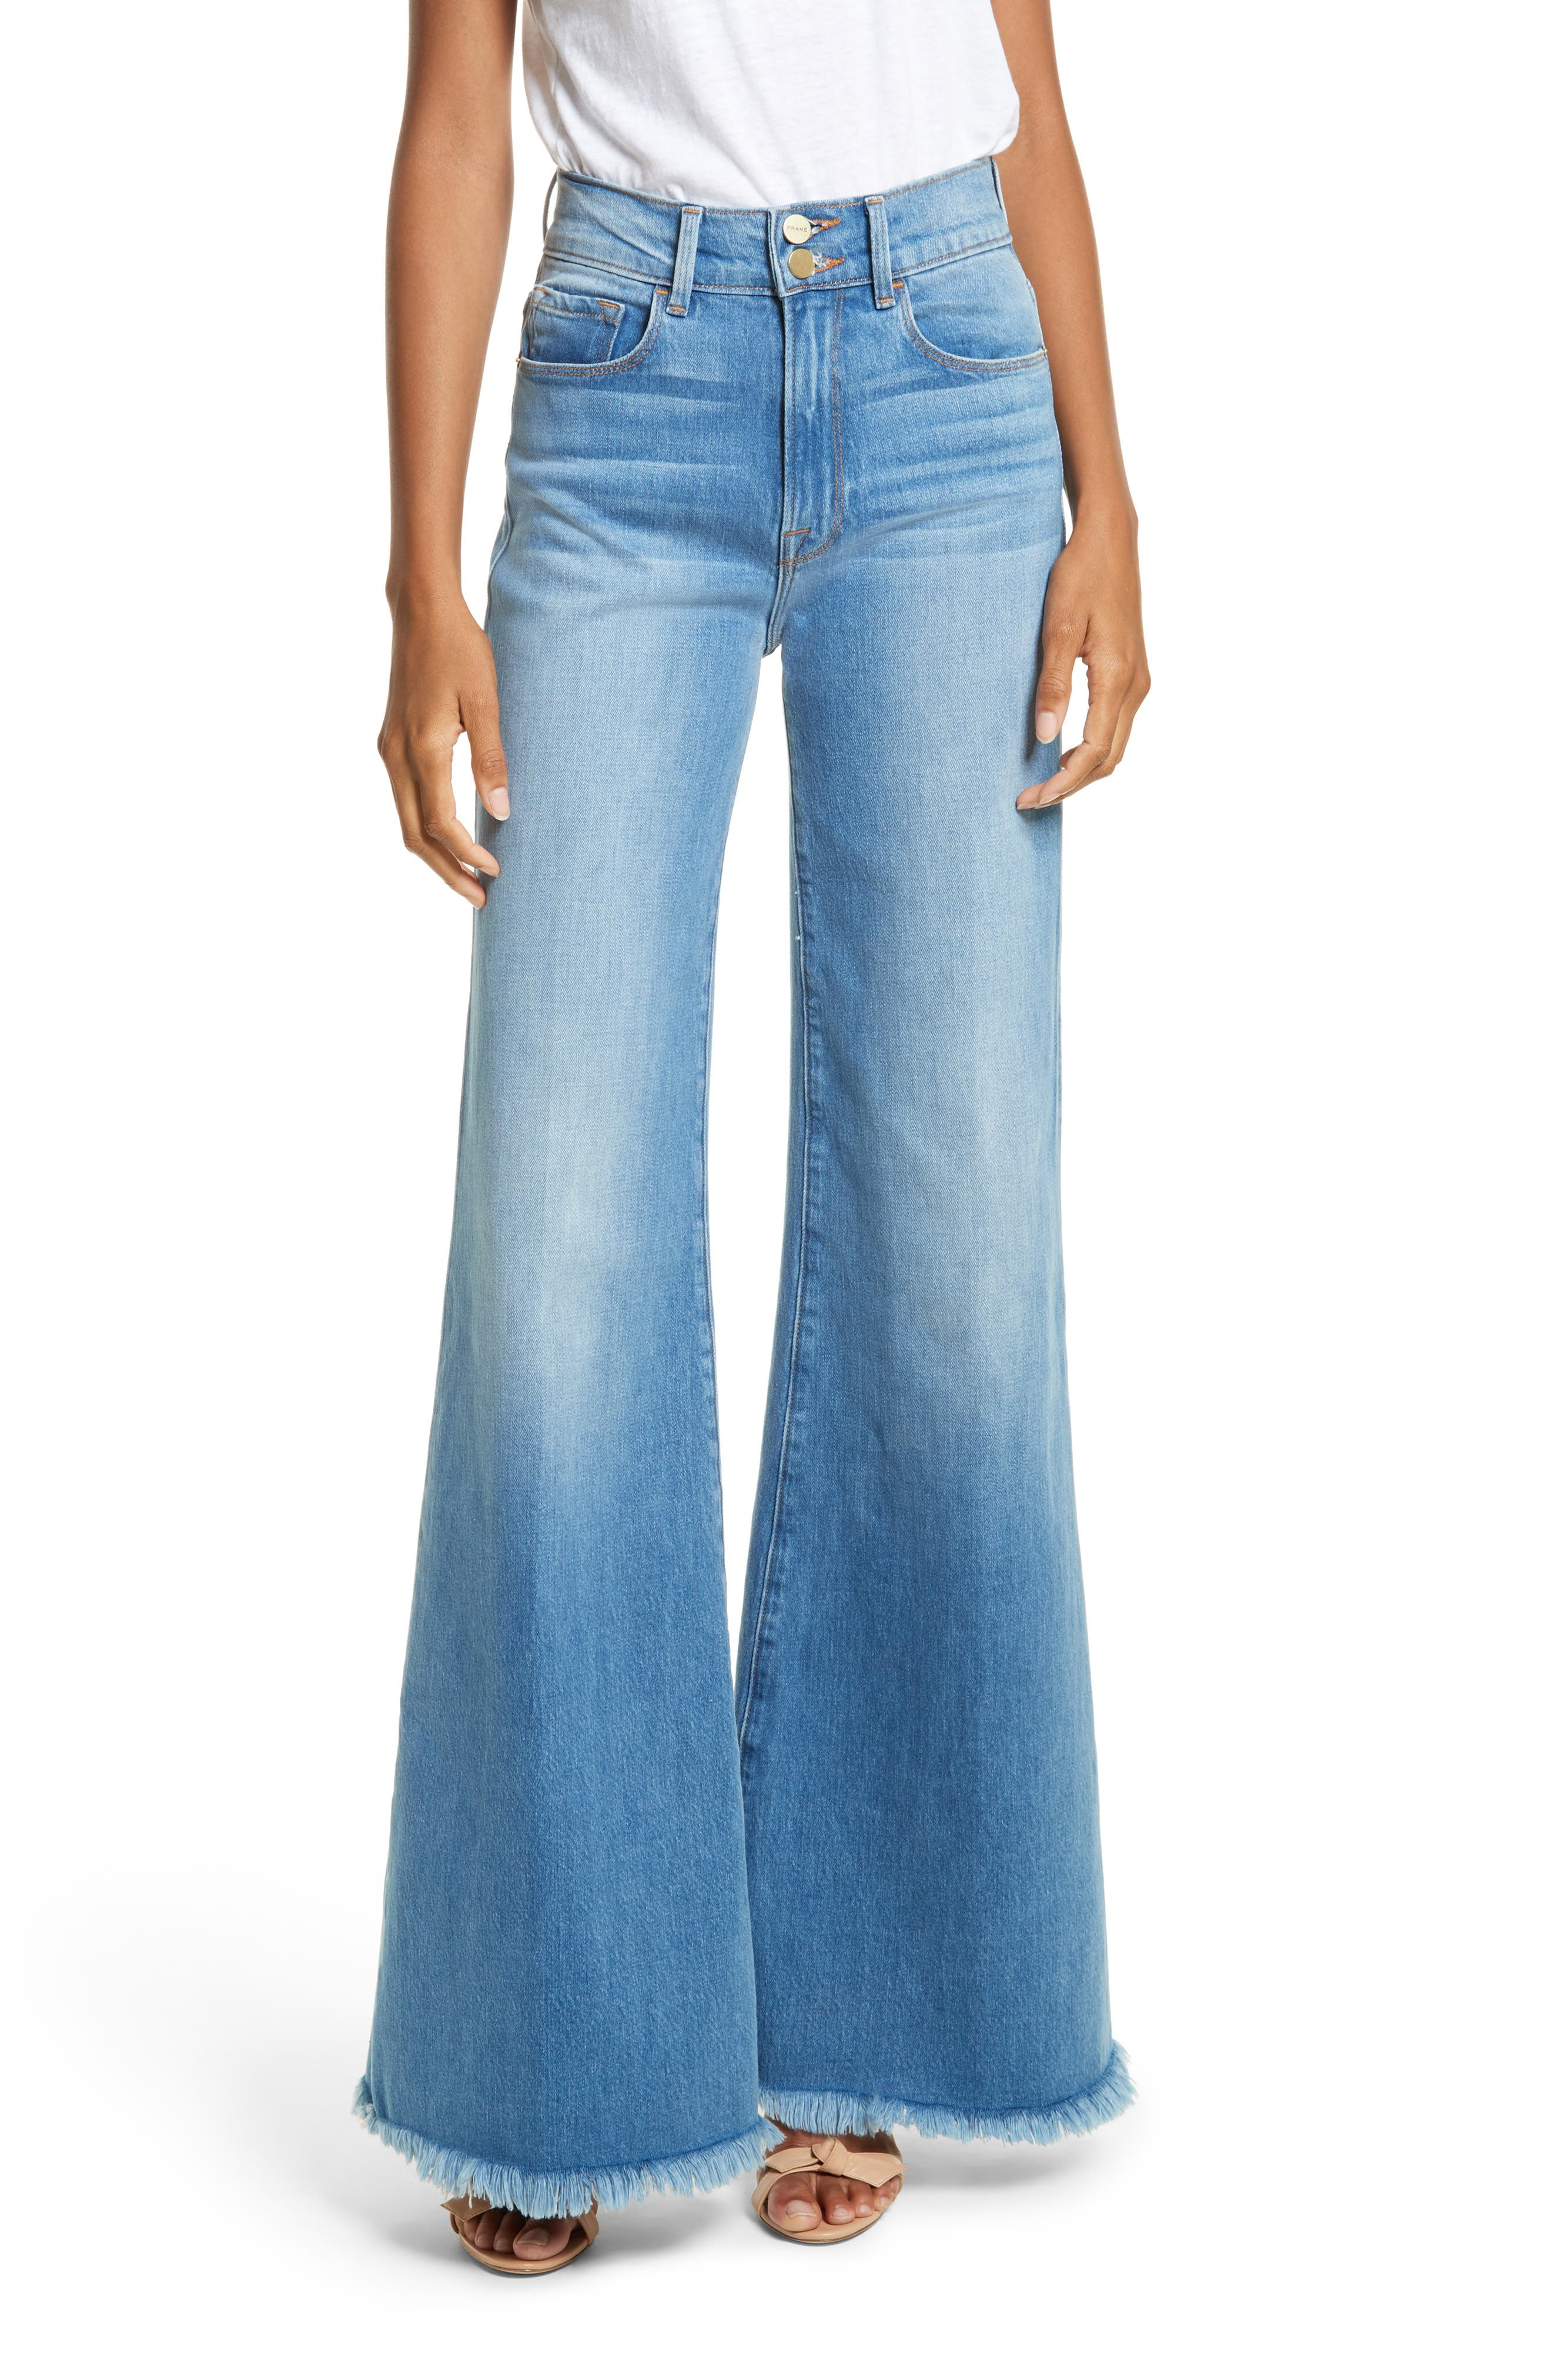 Le Palazzo High Waist Raw Edge Jeans,                         Main,                         color,